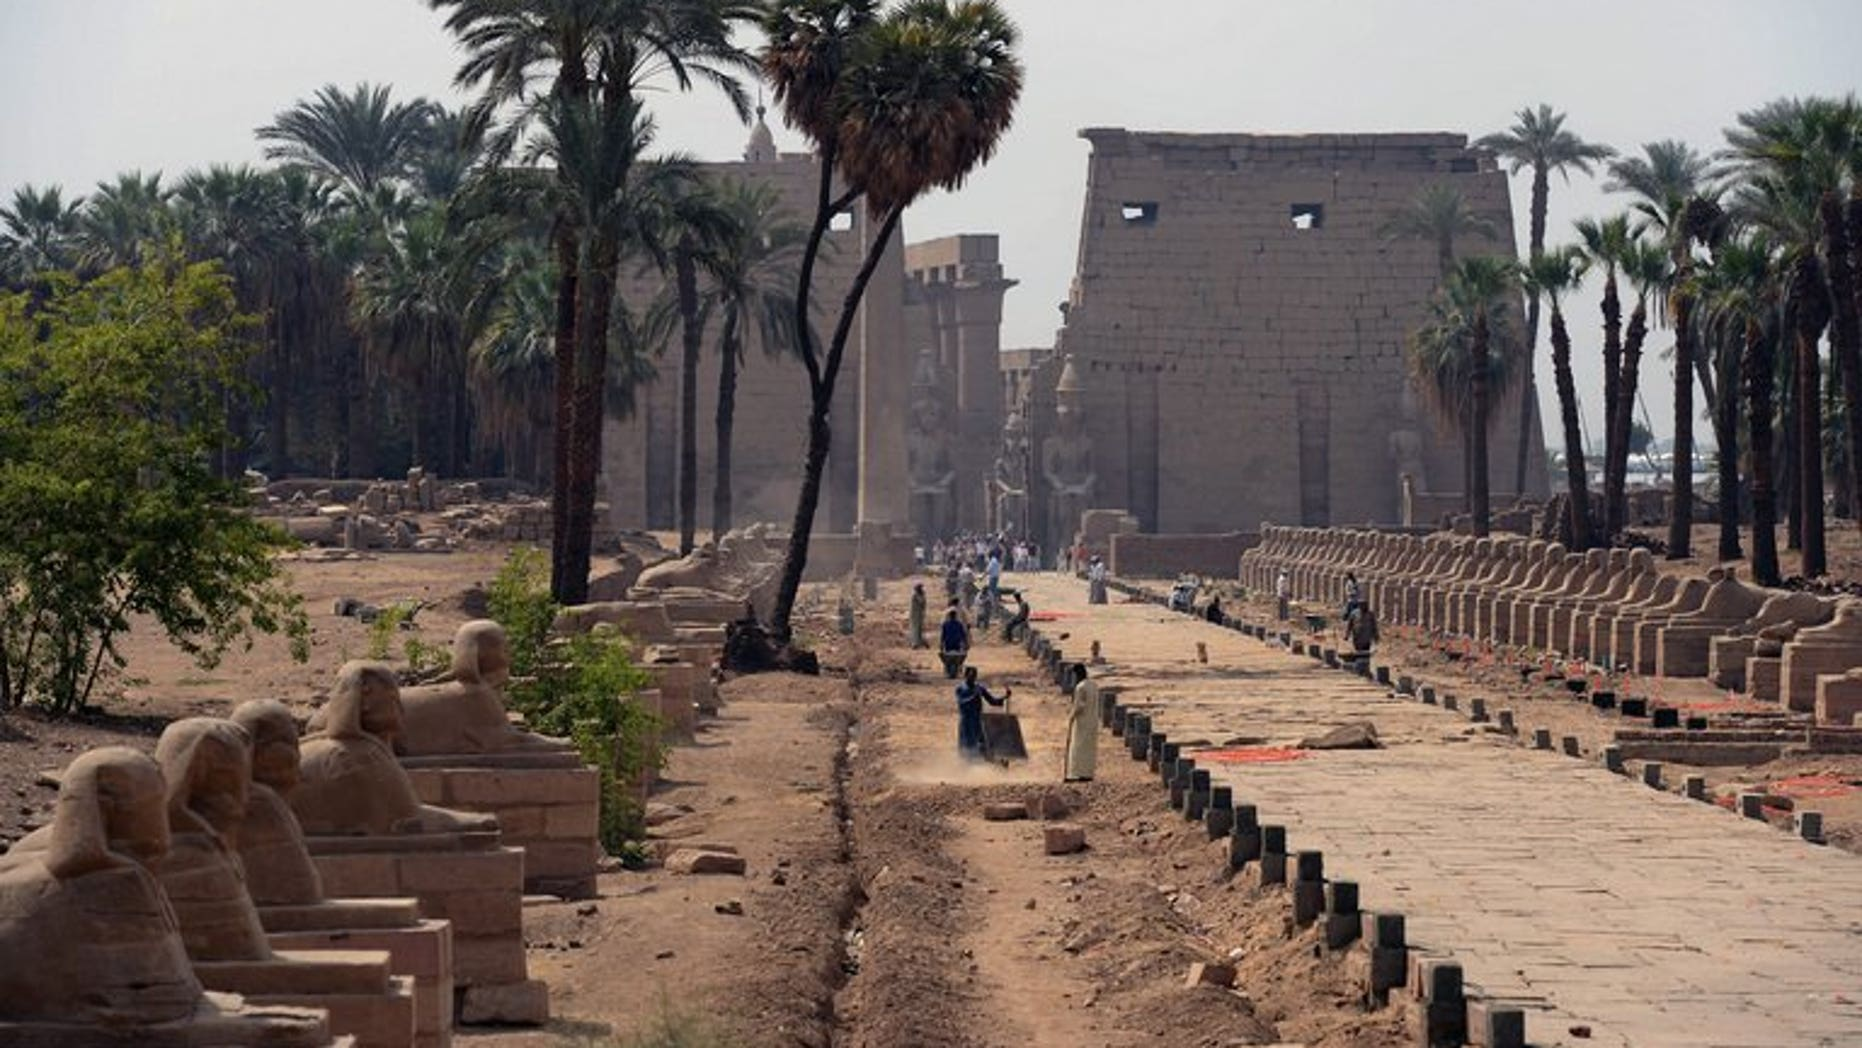 The ancient temple in Luxor, Egypt. Egypt's minister of tourism has resigned following the appointment of a new governor in the temple city of Luxor who belongs to an Islamist party linked to a deadly attack on tourists, state TV said Wednesday.